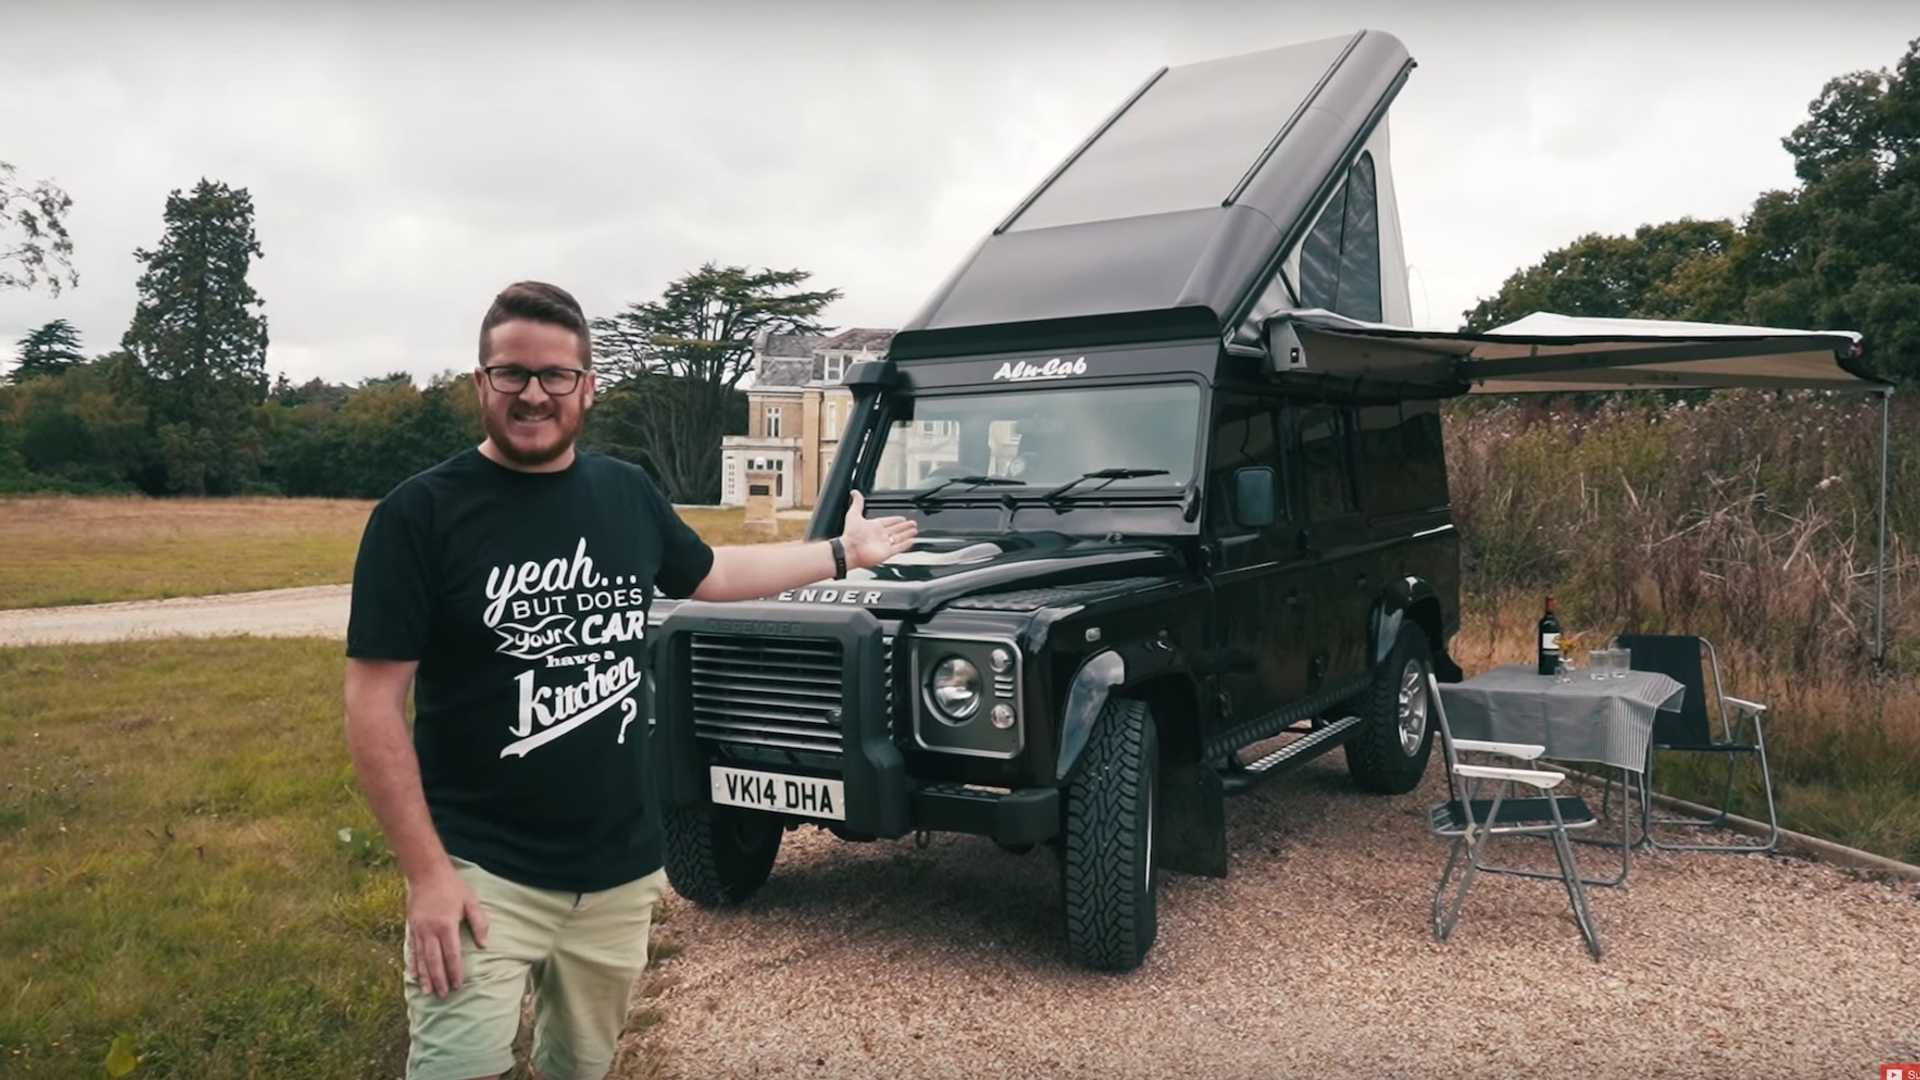 Land Rover Defender camper can really do it all